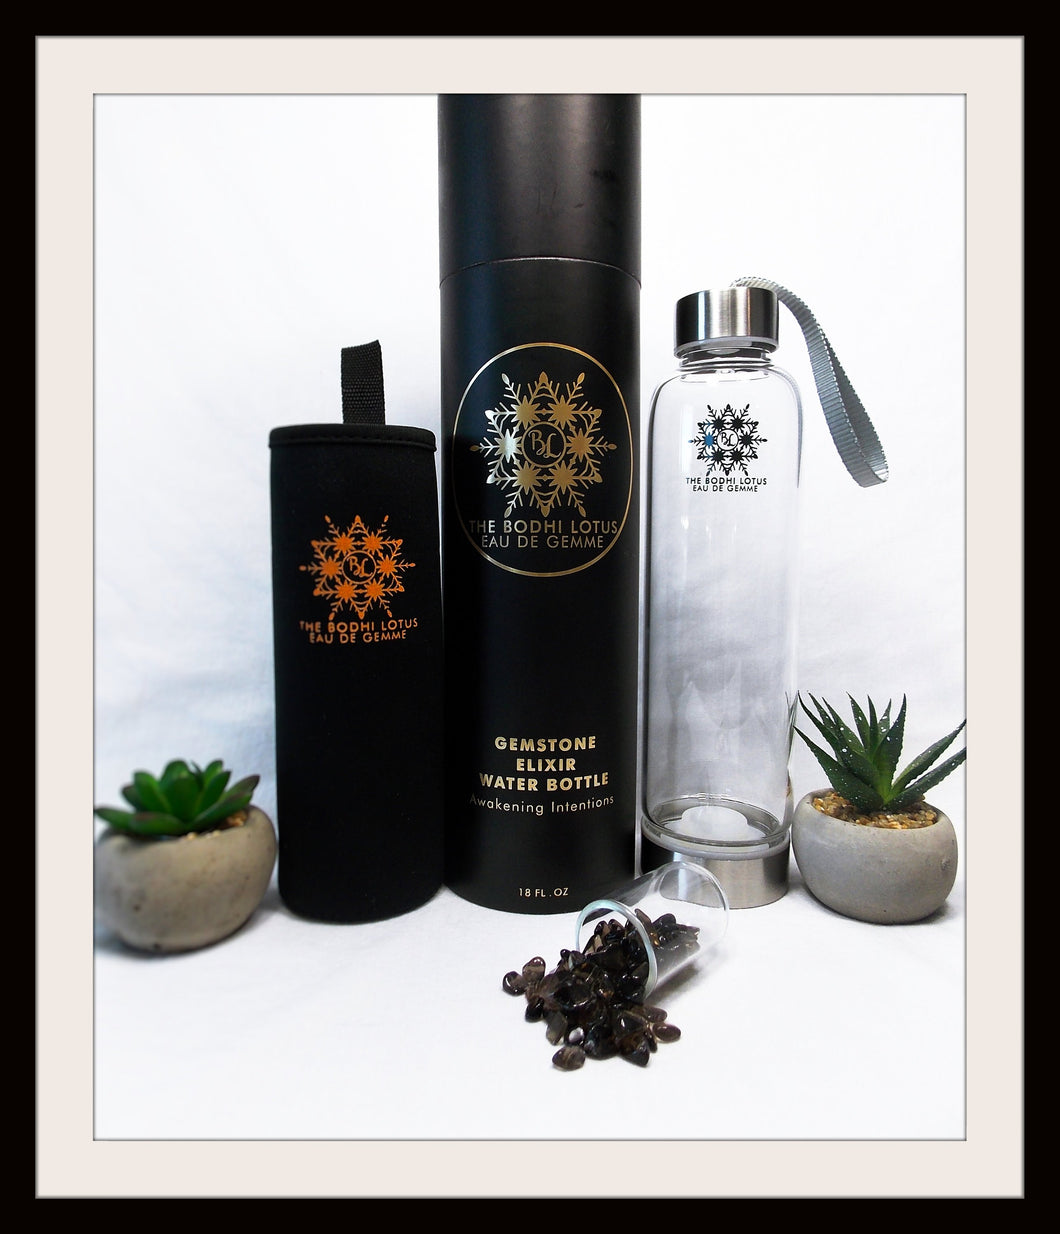 SMOKY QUARTZ Eau De Gemme Balance Smoky Quartz Gemstone Elixir Water Bottle Smoky Quartz Bottle